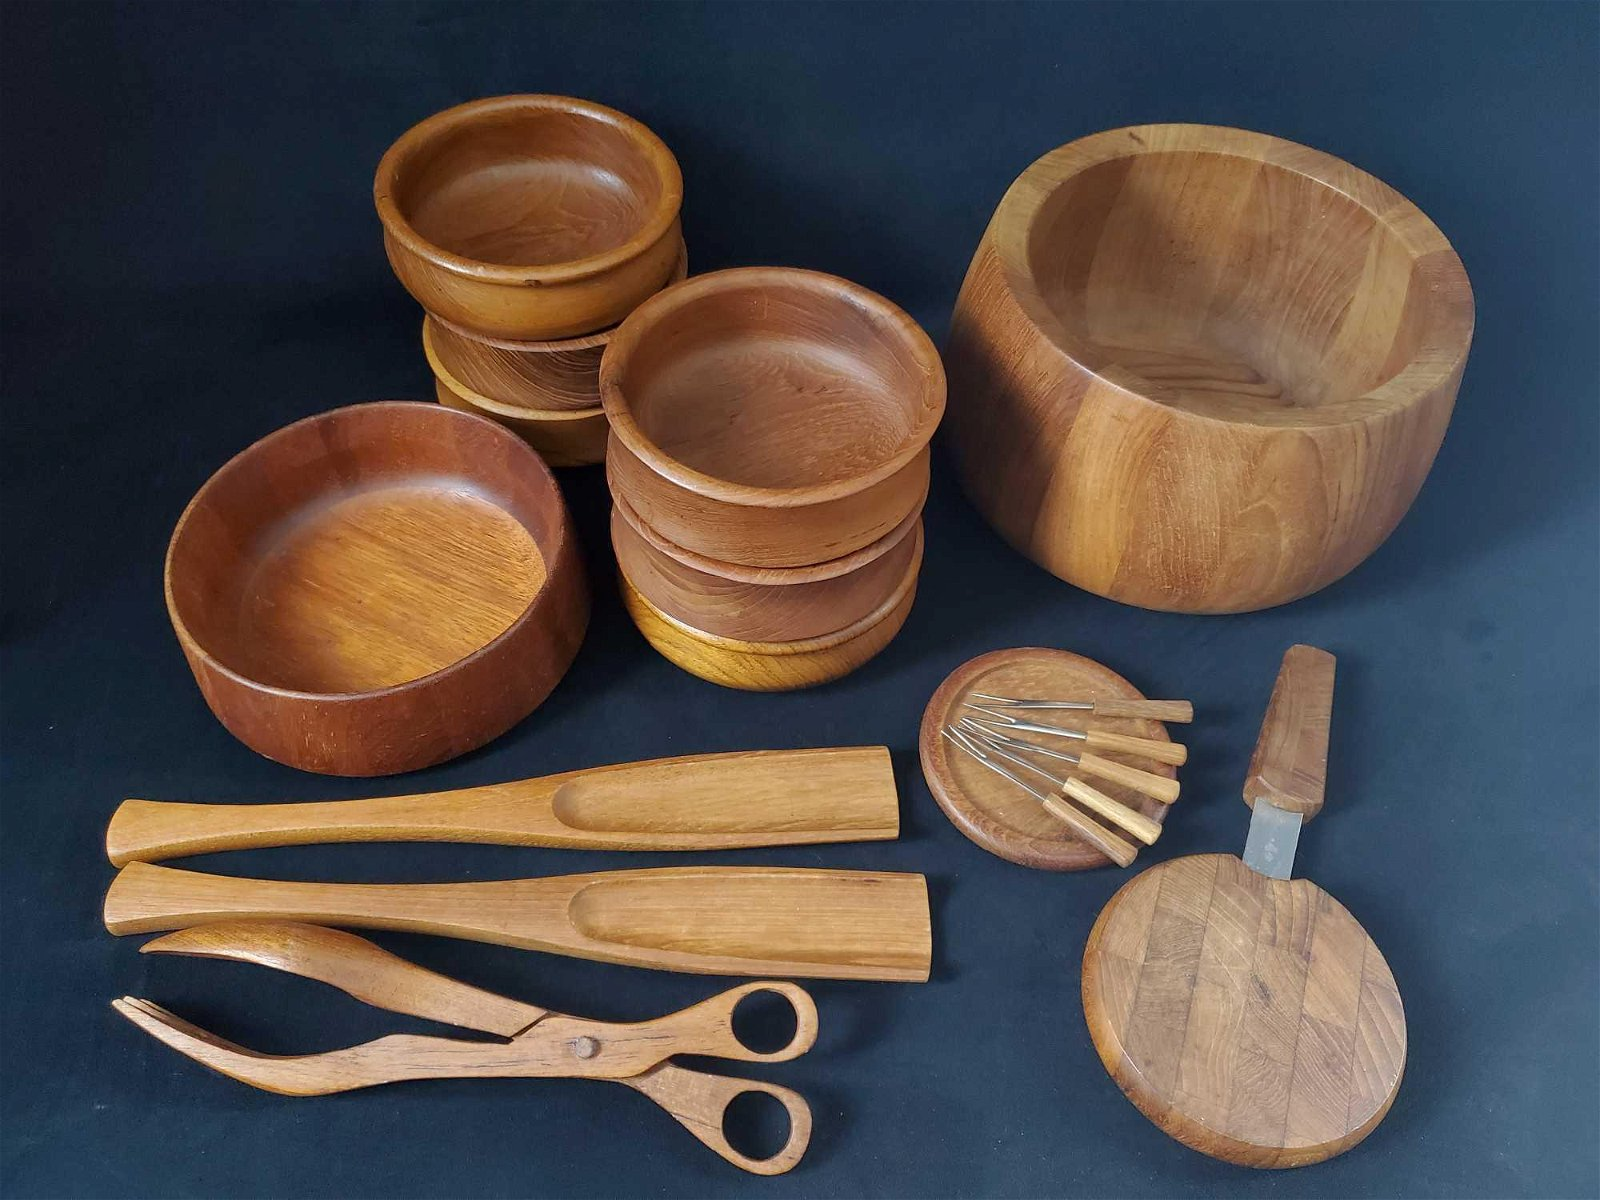 18 Piece Dansk Malaysia Wooden Kitchen Set